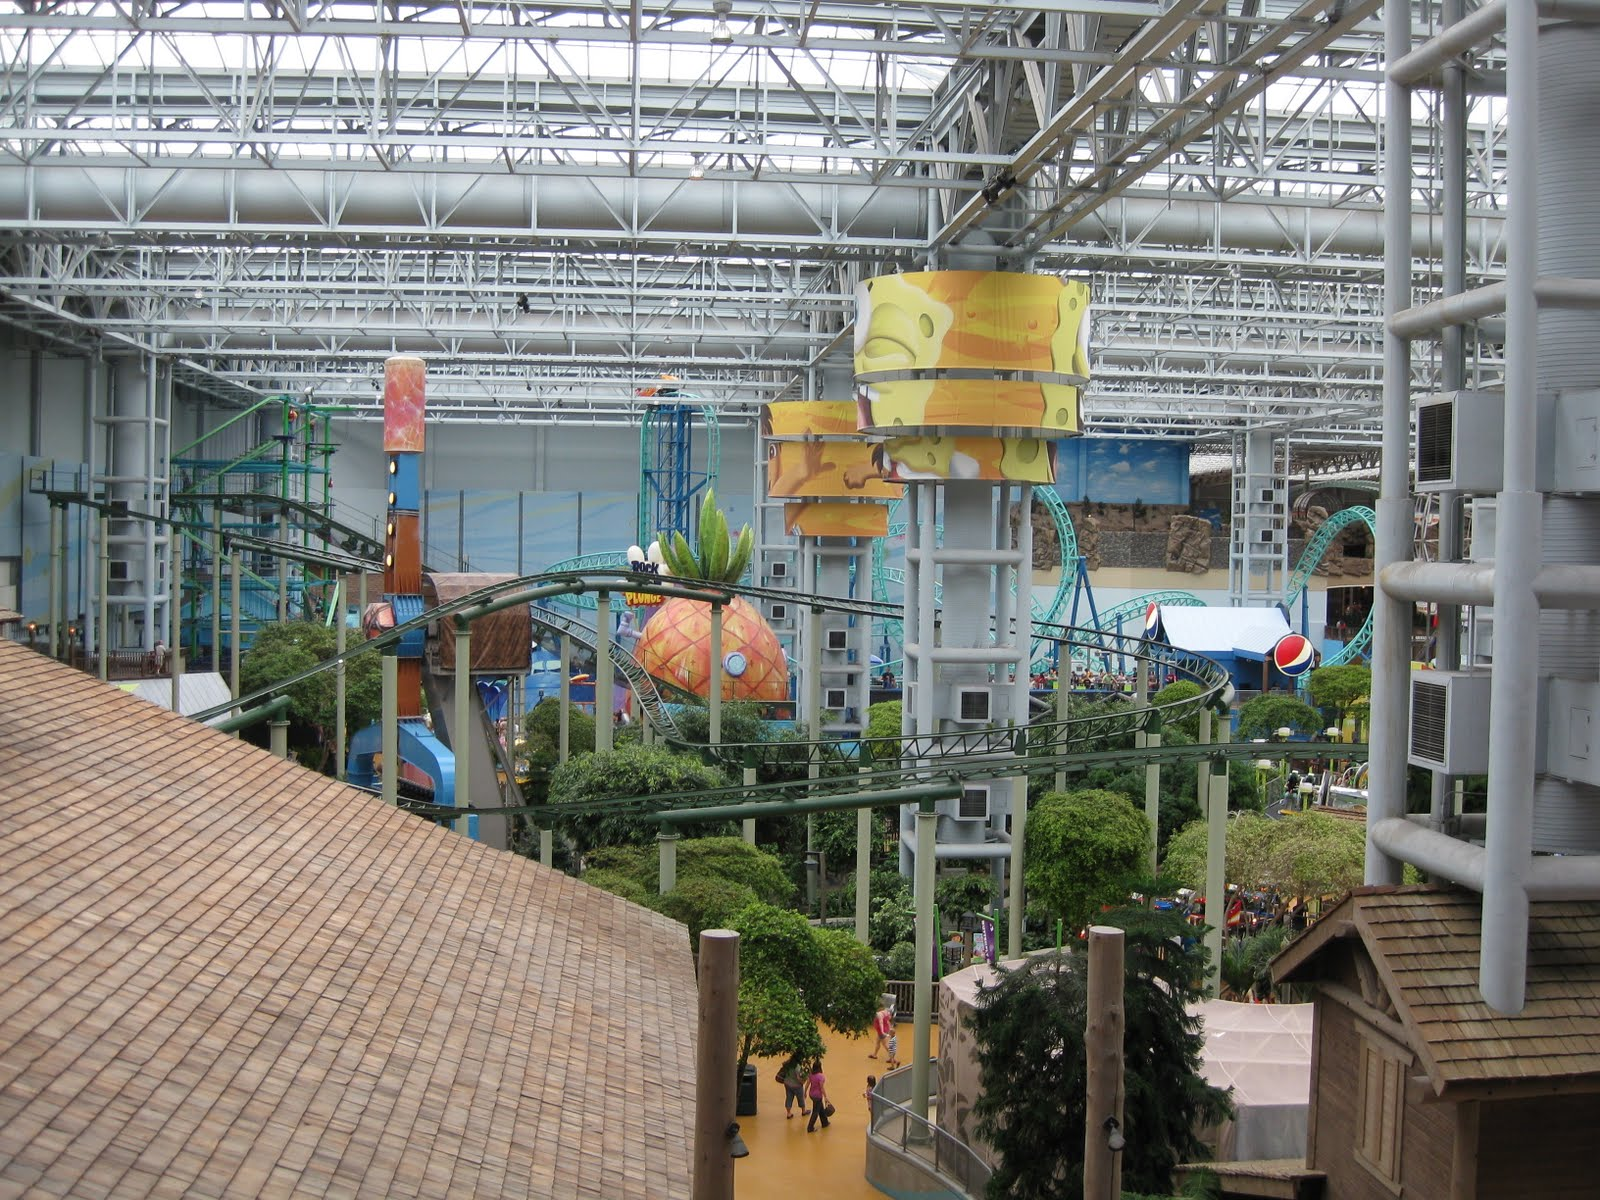 The Chisholm S Trail Mall Of America